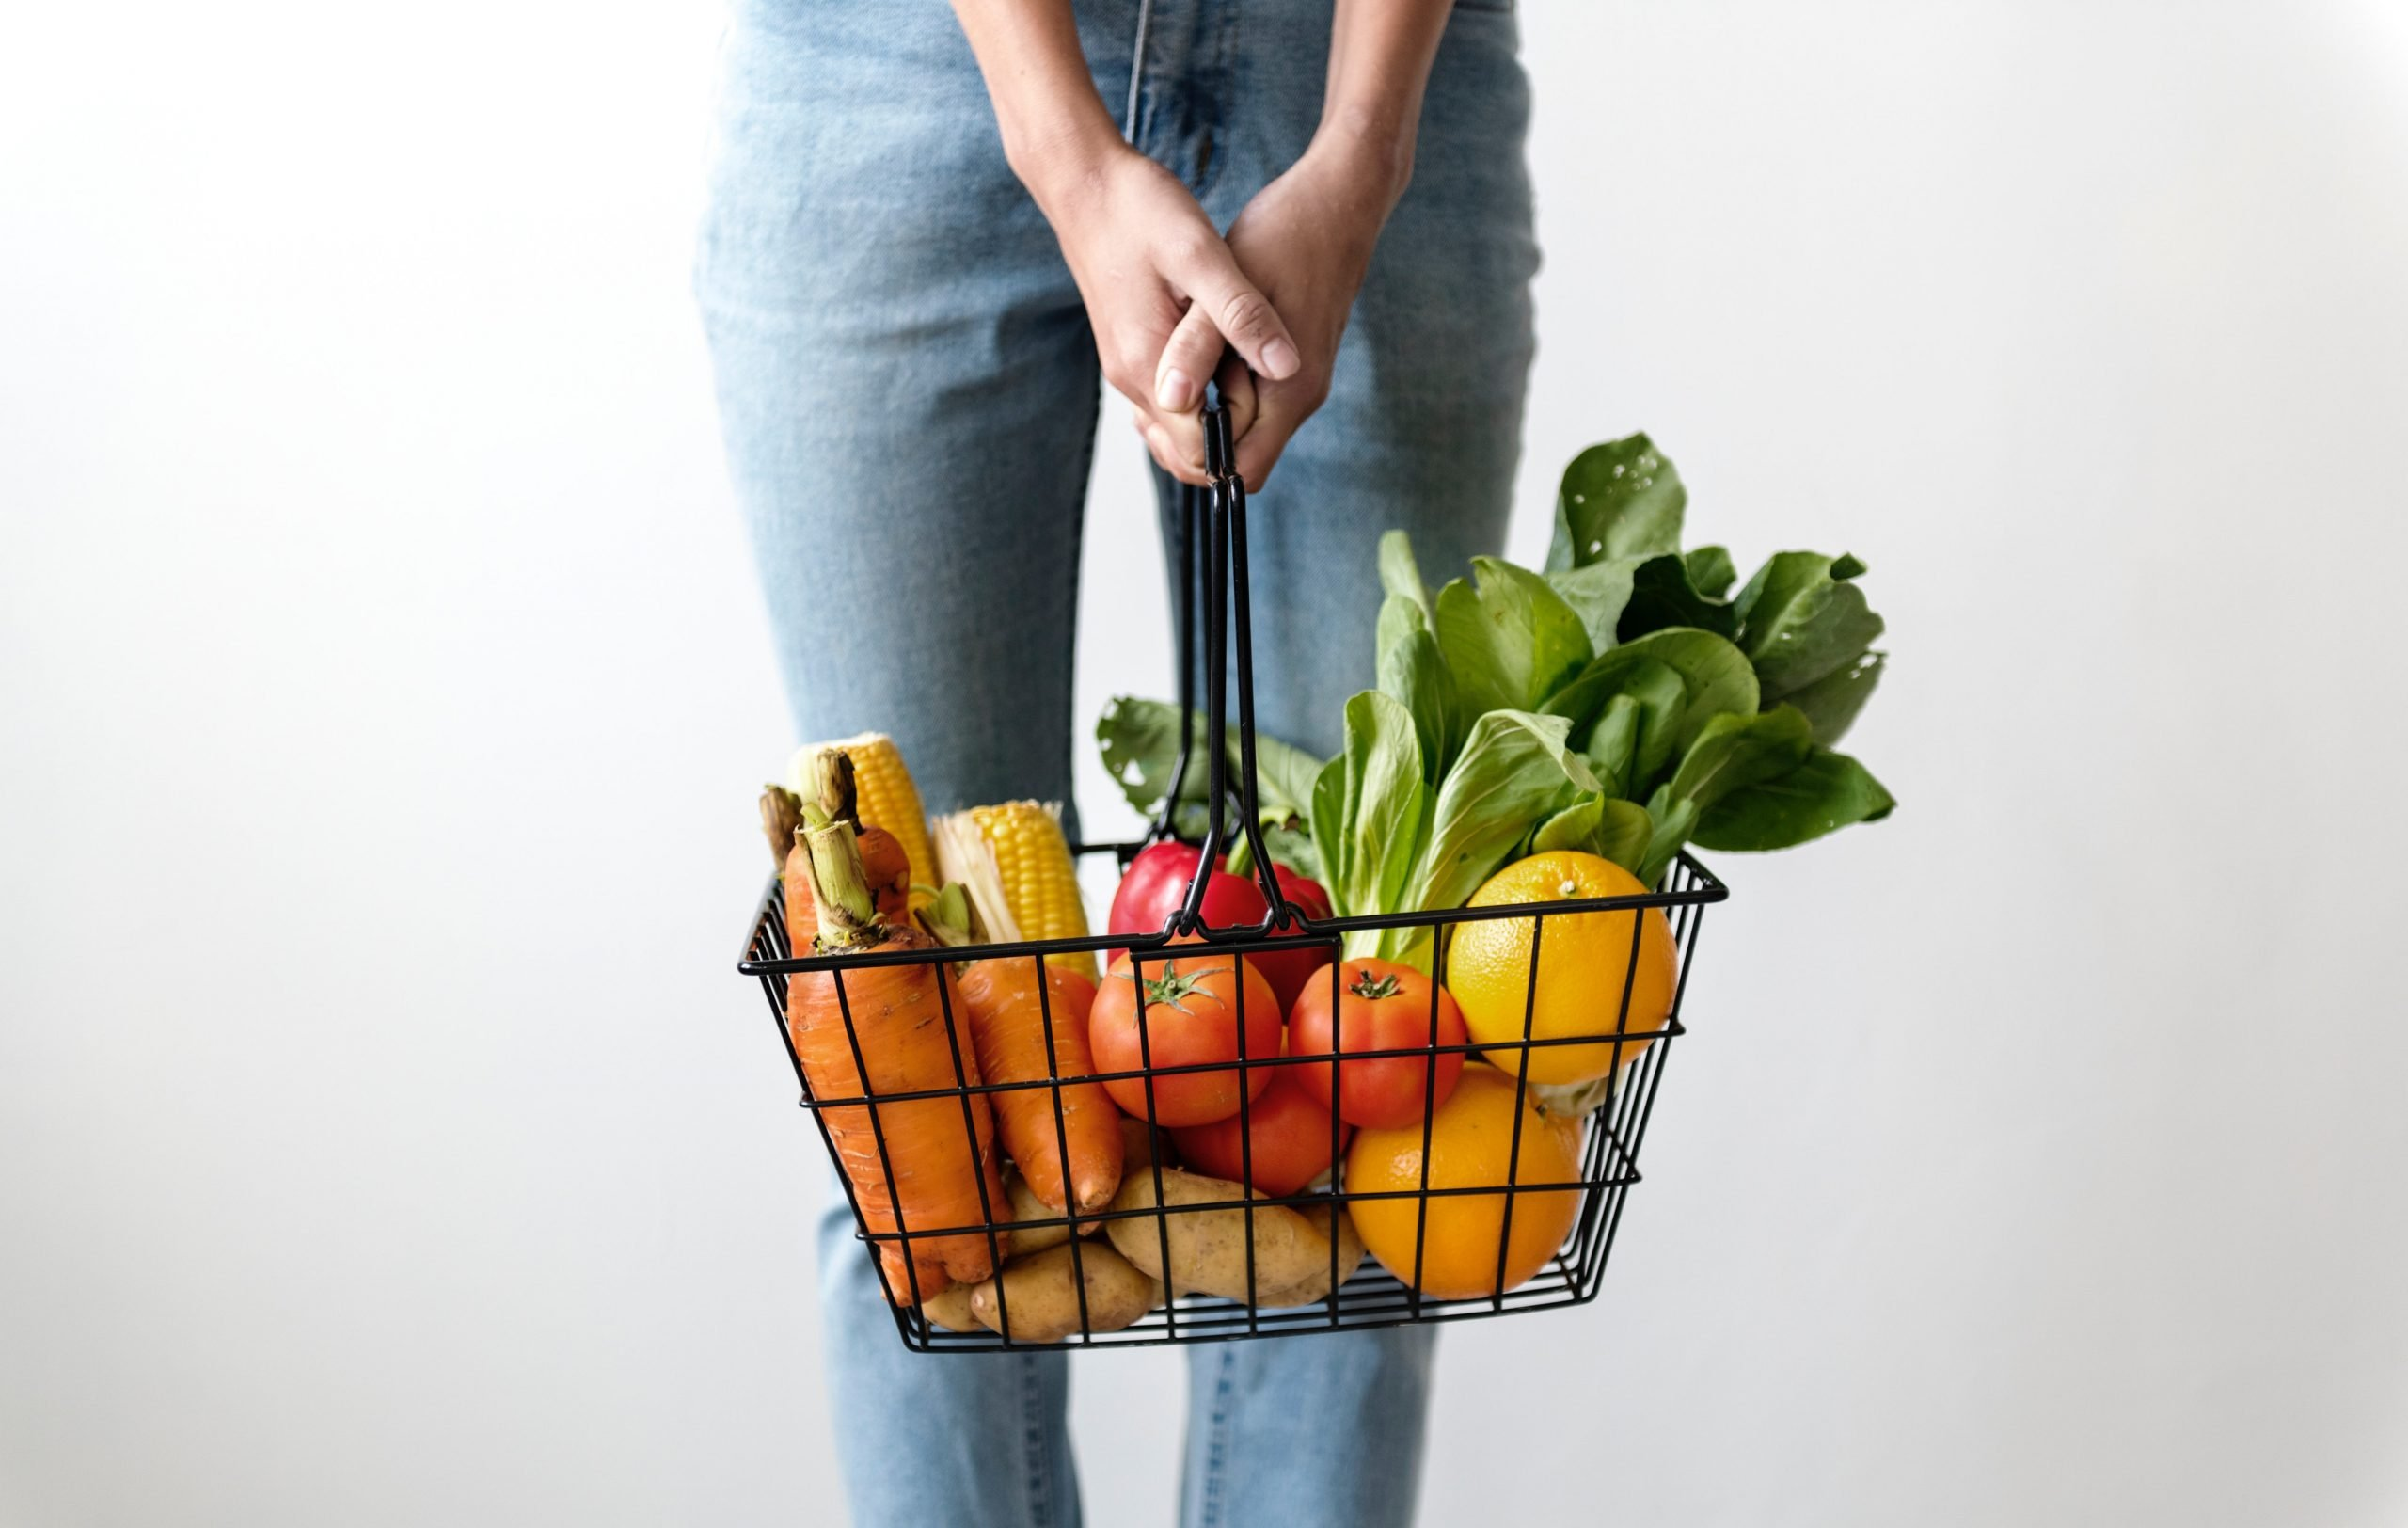 4 Tips for Navigating the Grocery Store